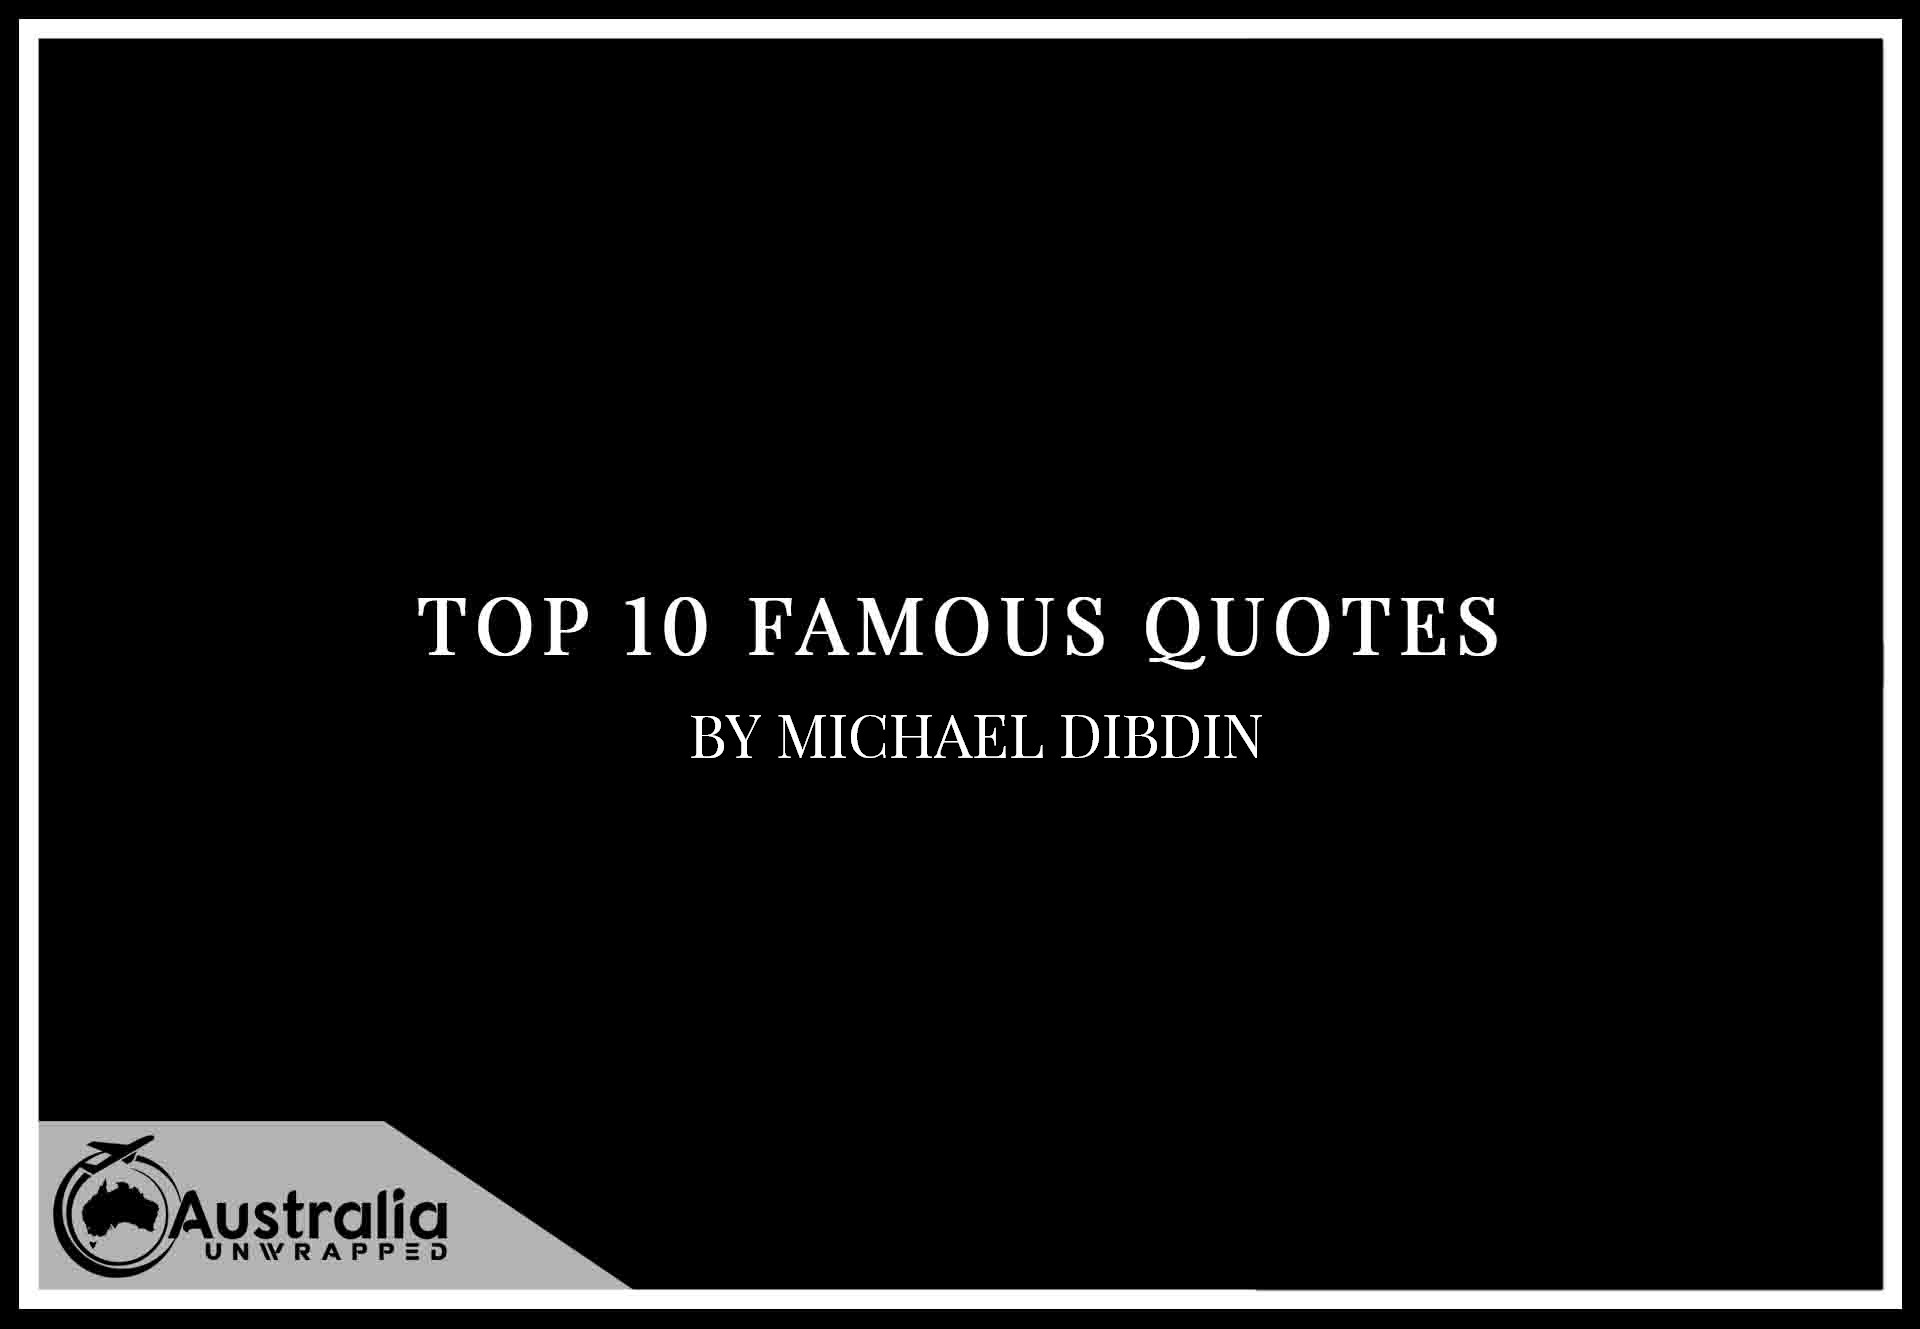 Top 10 Famous Quotes by Author Michael Dibdin